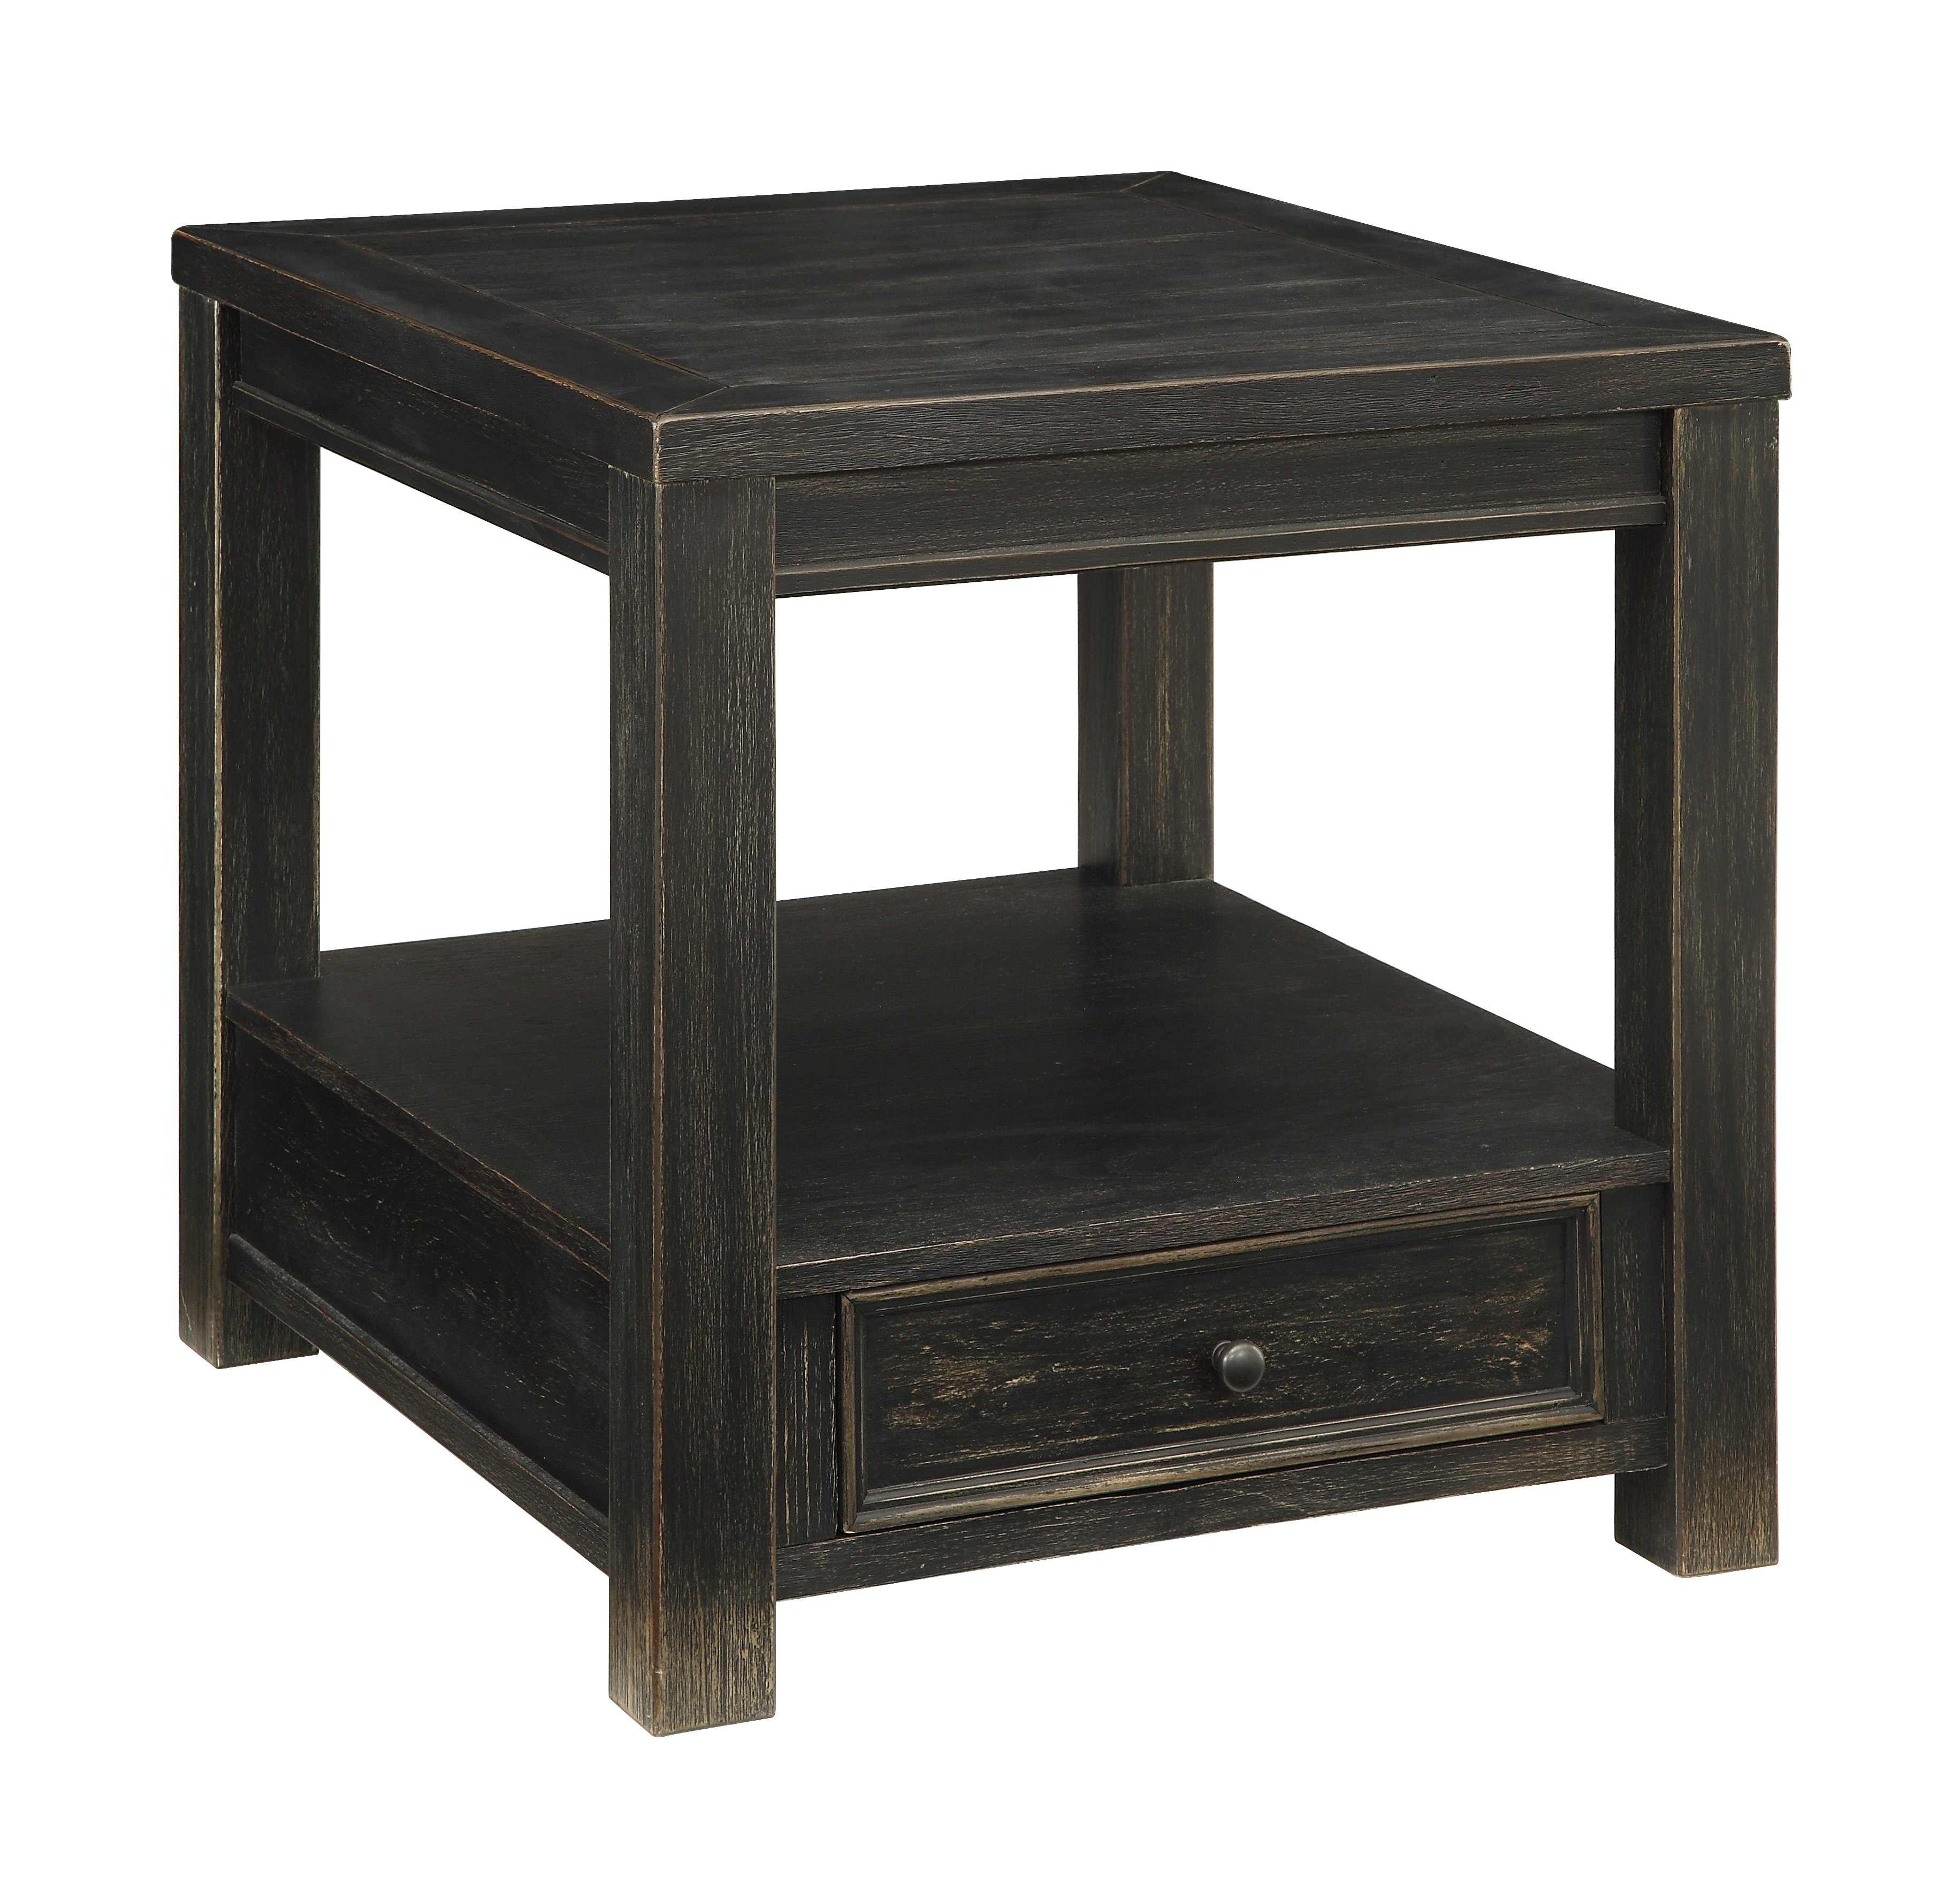 Coast to Coast Imports Coast to Coast Accents One Drawer End Table - Item Number: 78623